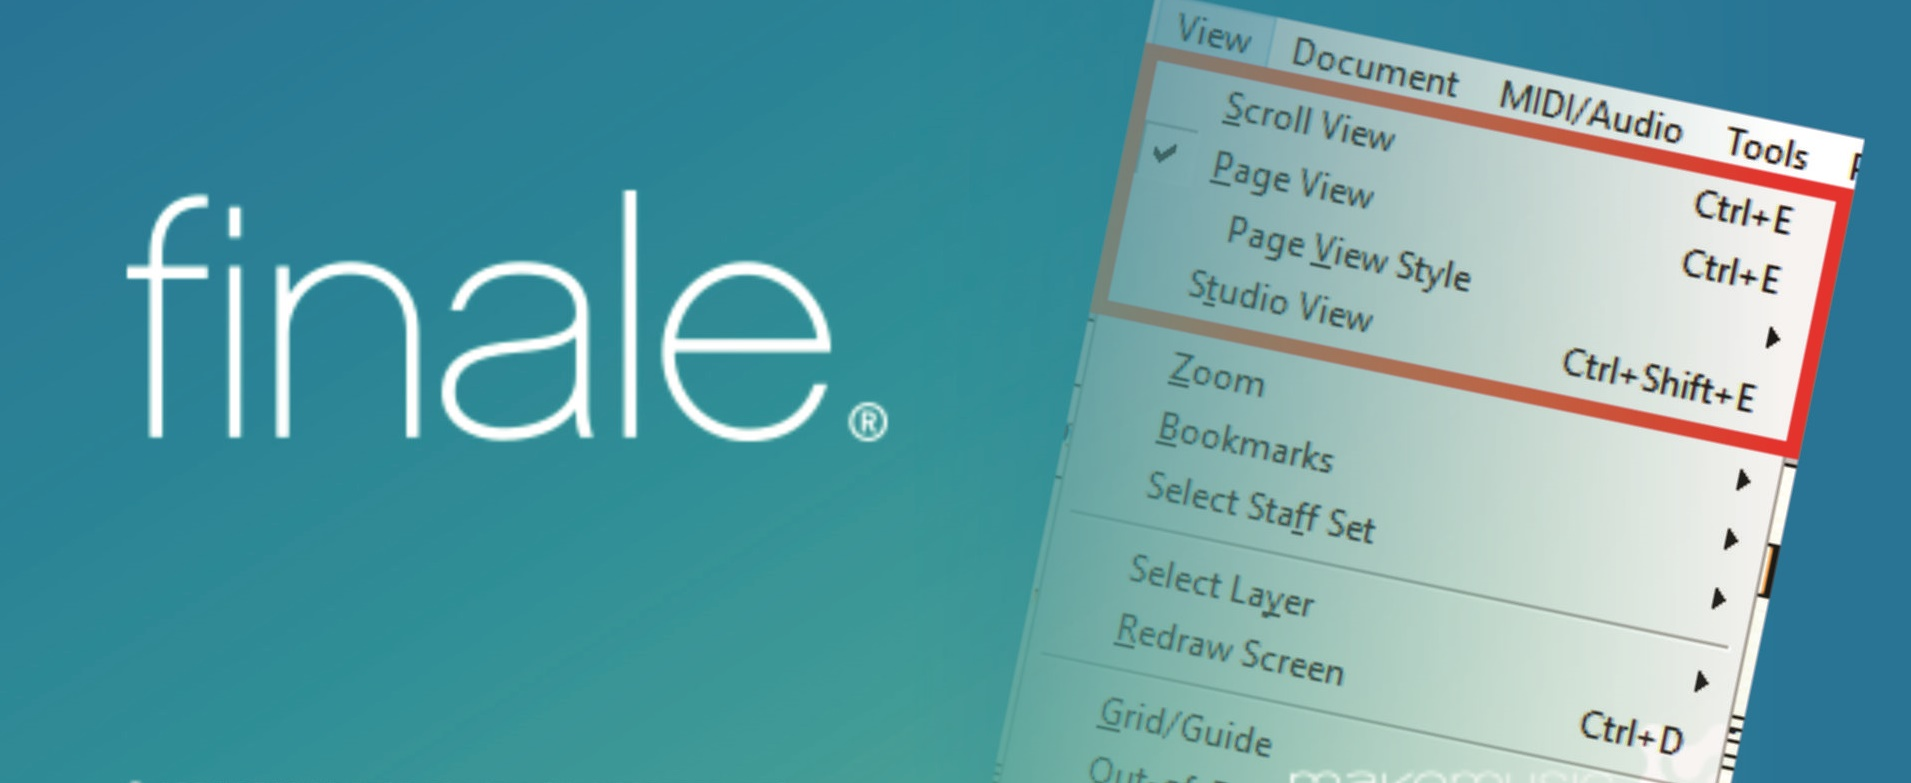 Finale Tutorial: Scroll View, Page View e Studio View